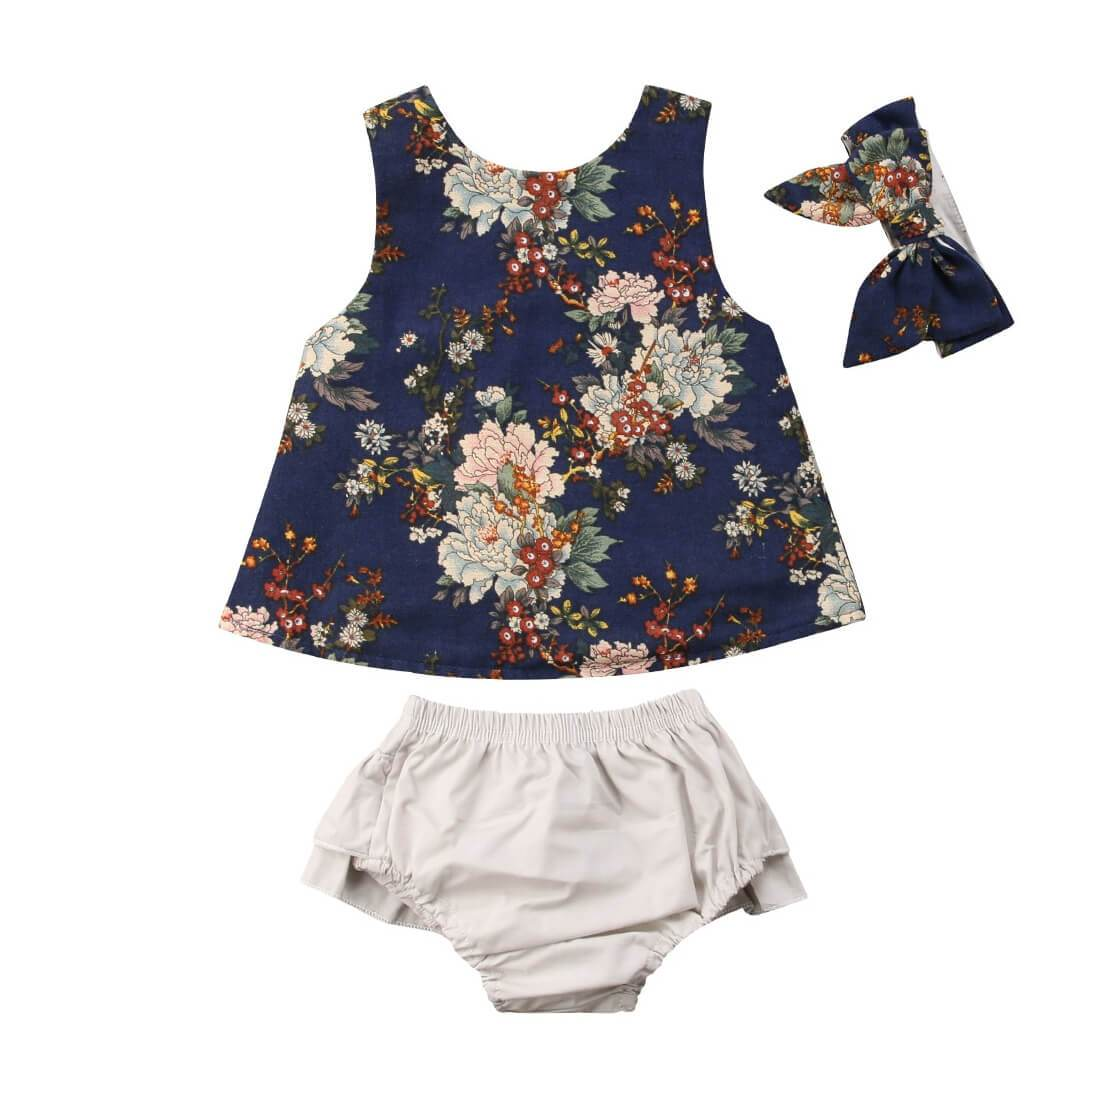 Navy Floral Set - The Trendy Toddlers